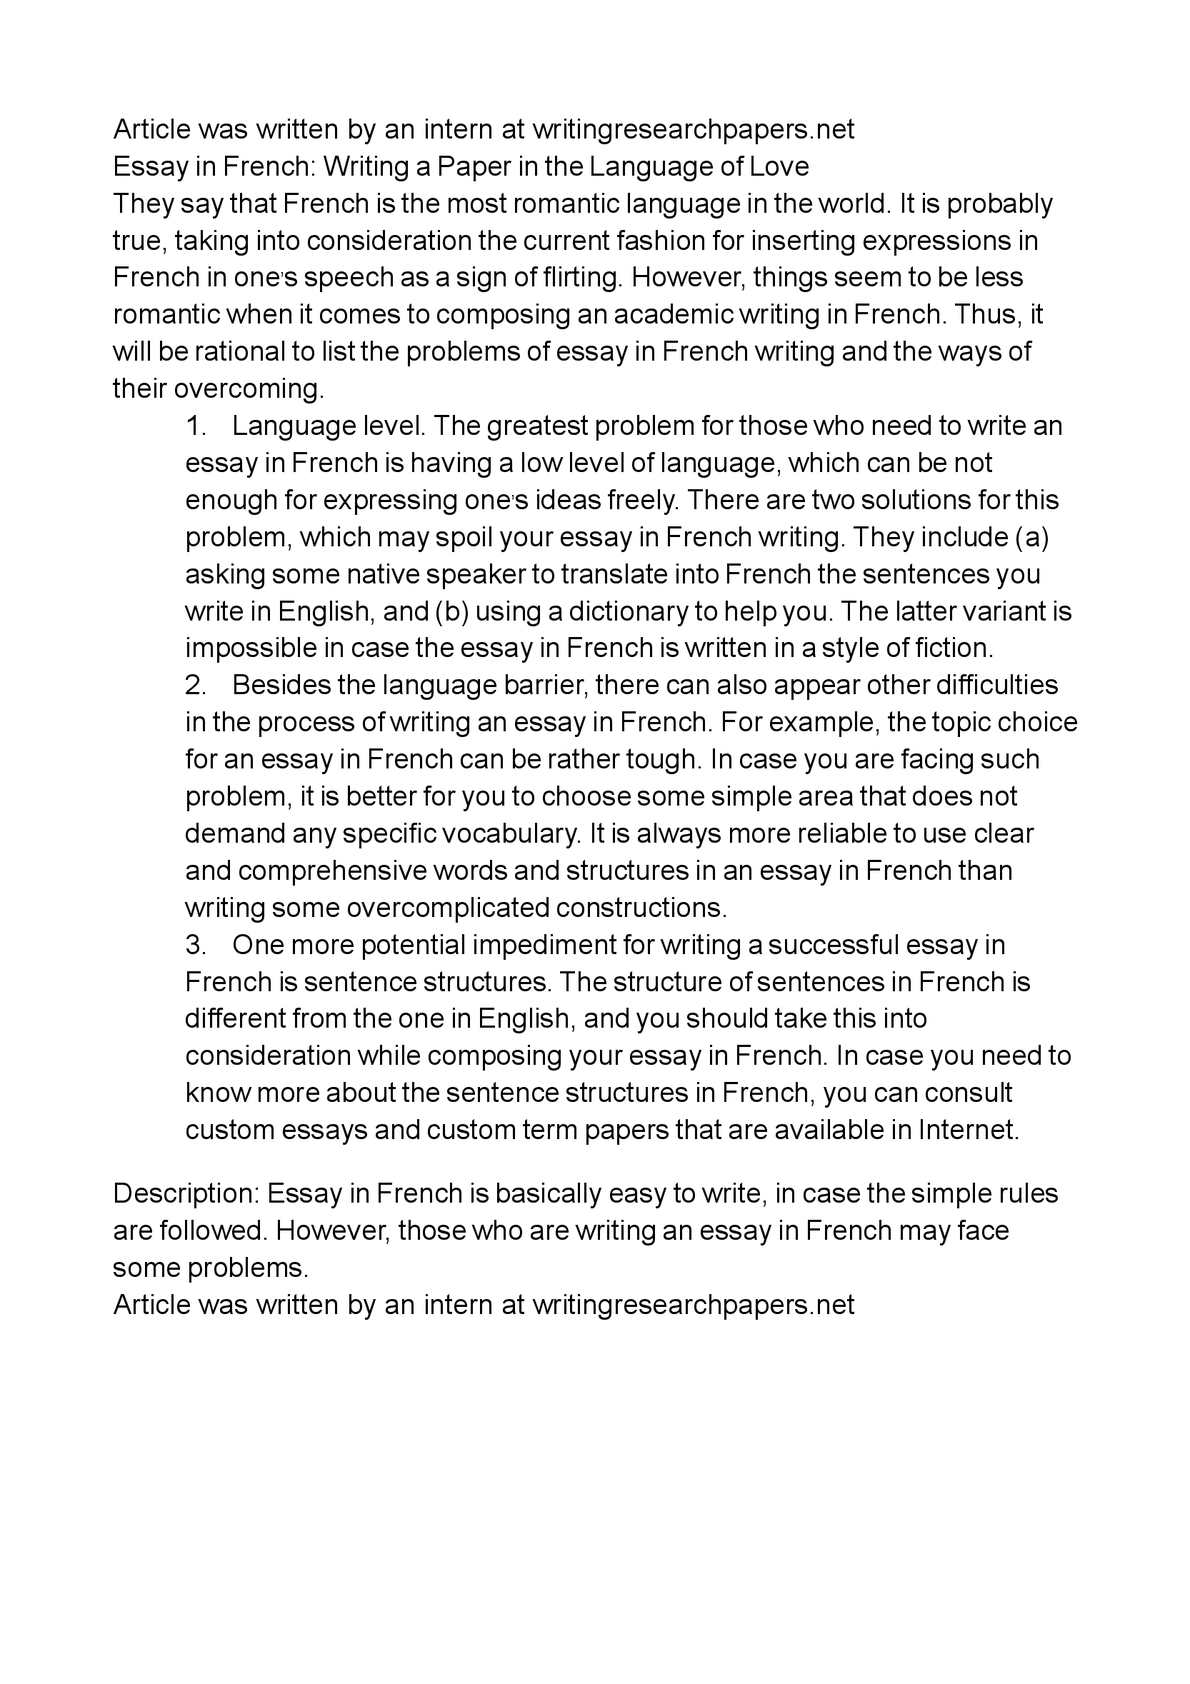 calam eacute o essay in french writing a paper in the language of love